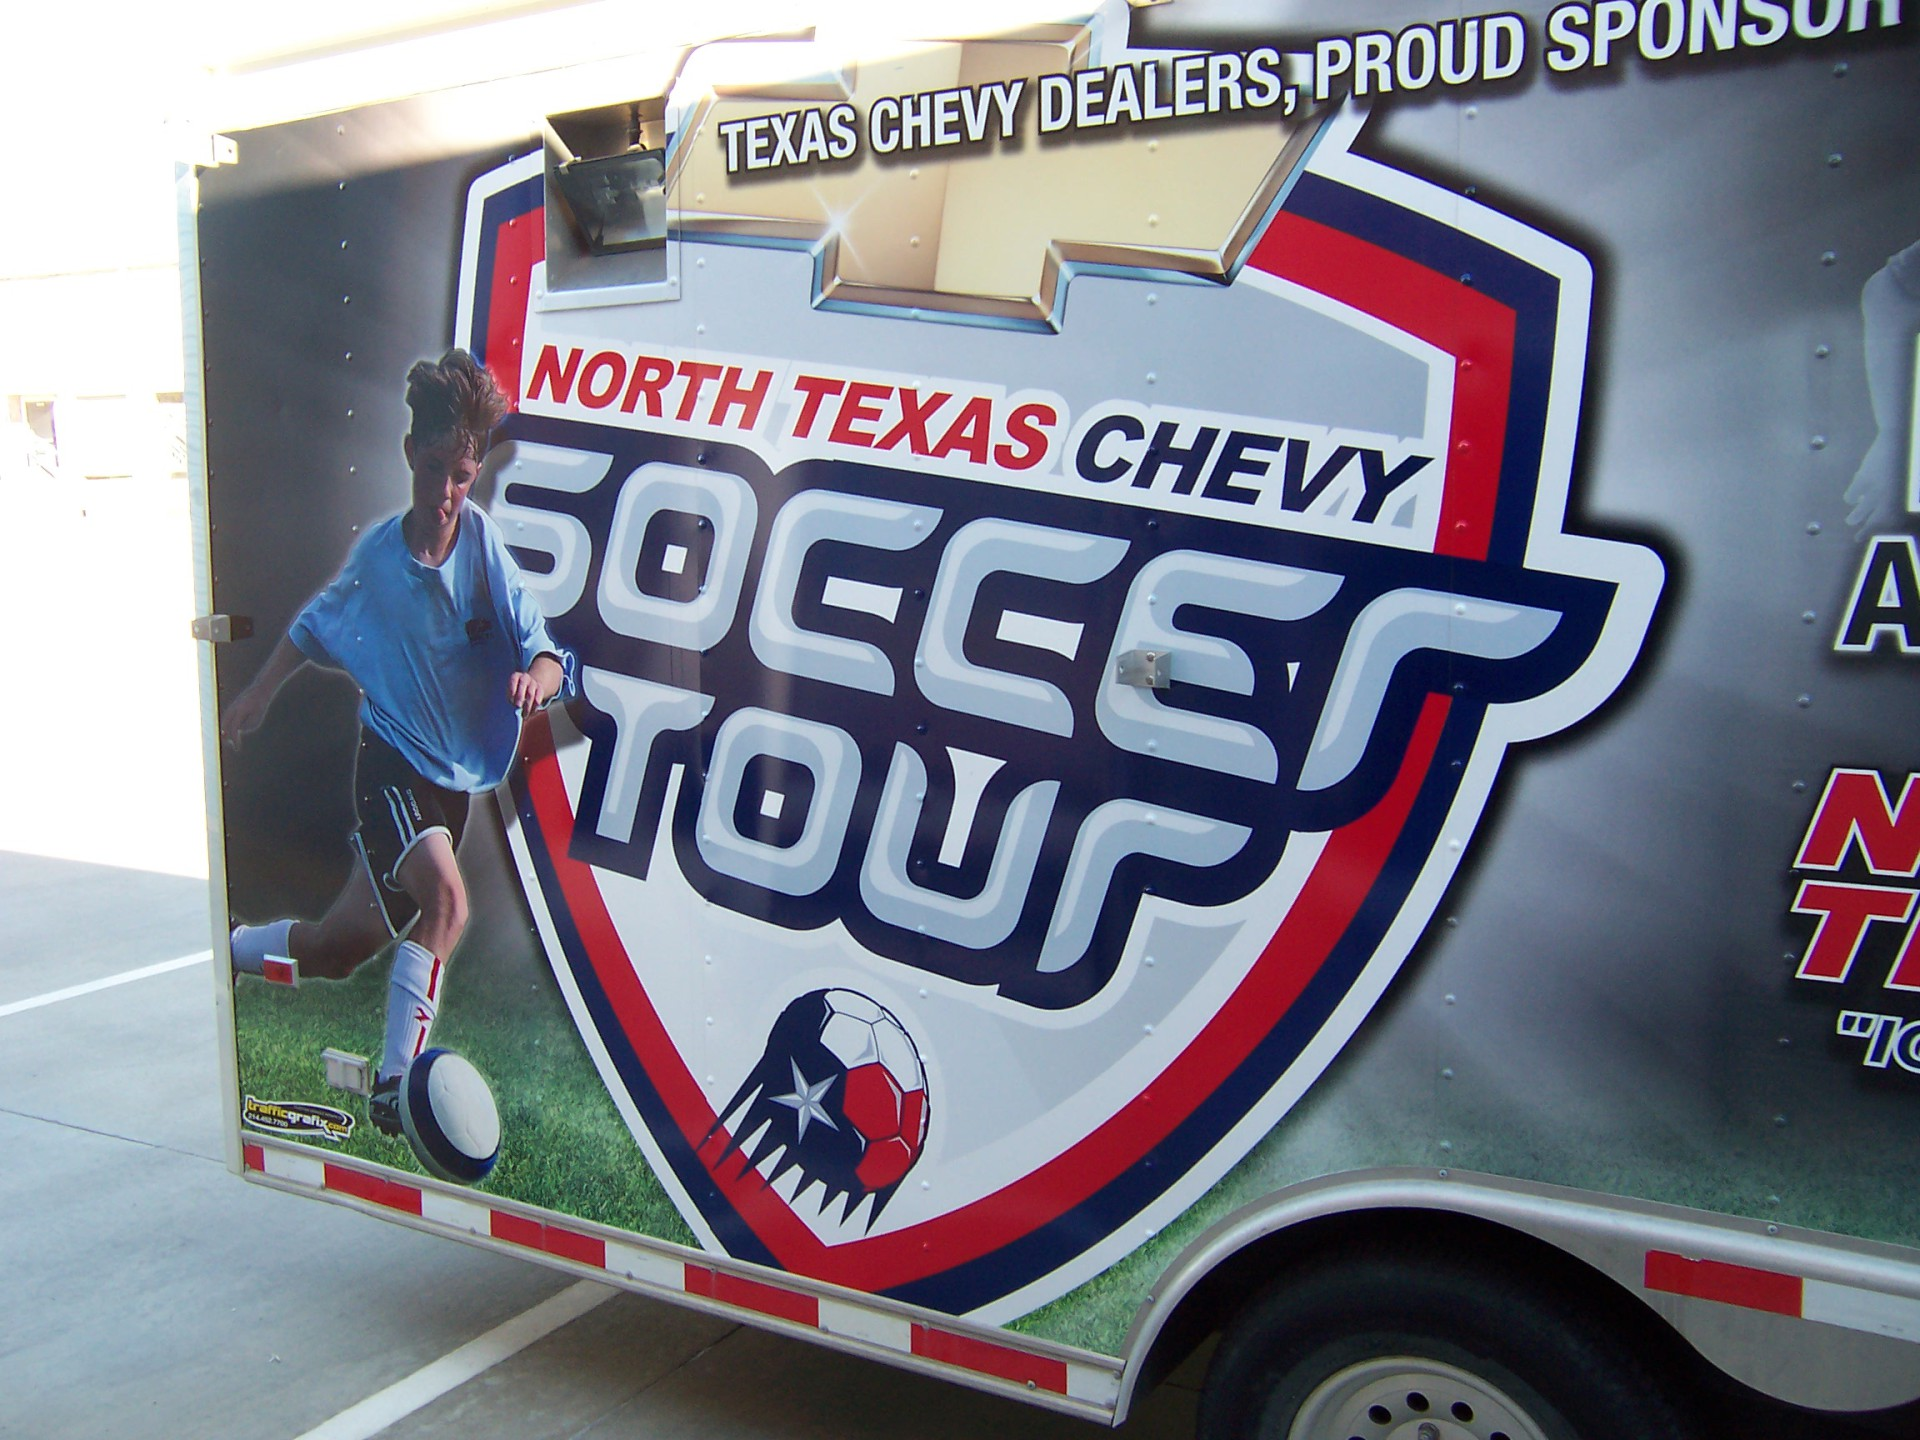 Frisco Trailer wrap, Trailer wrap dallas, Best trailer wrap